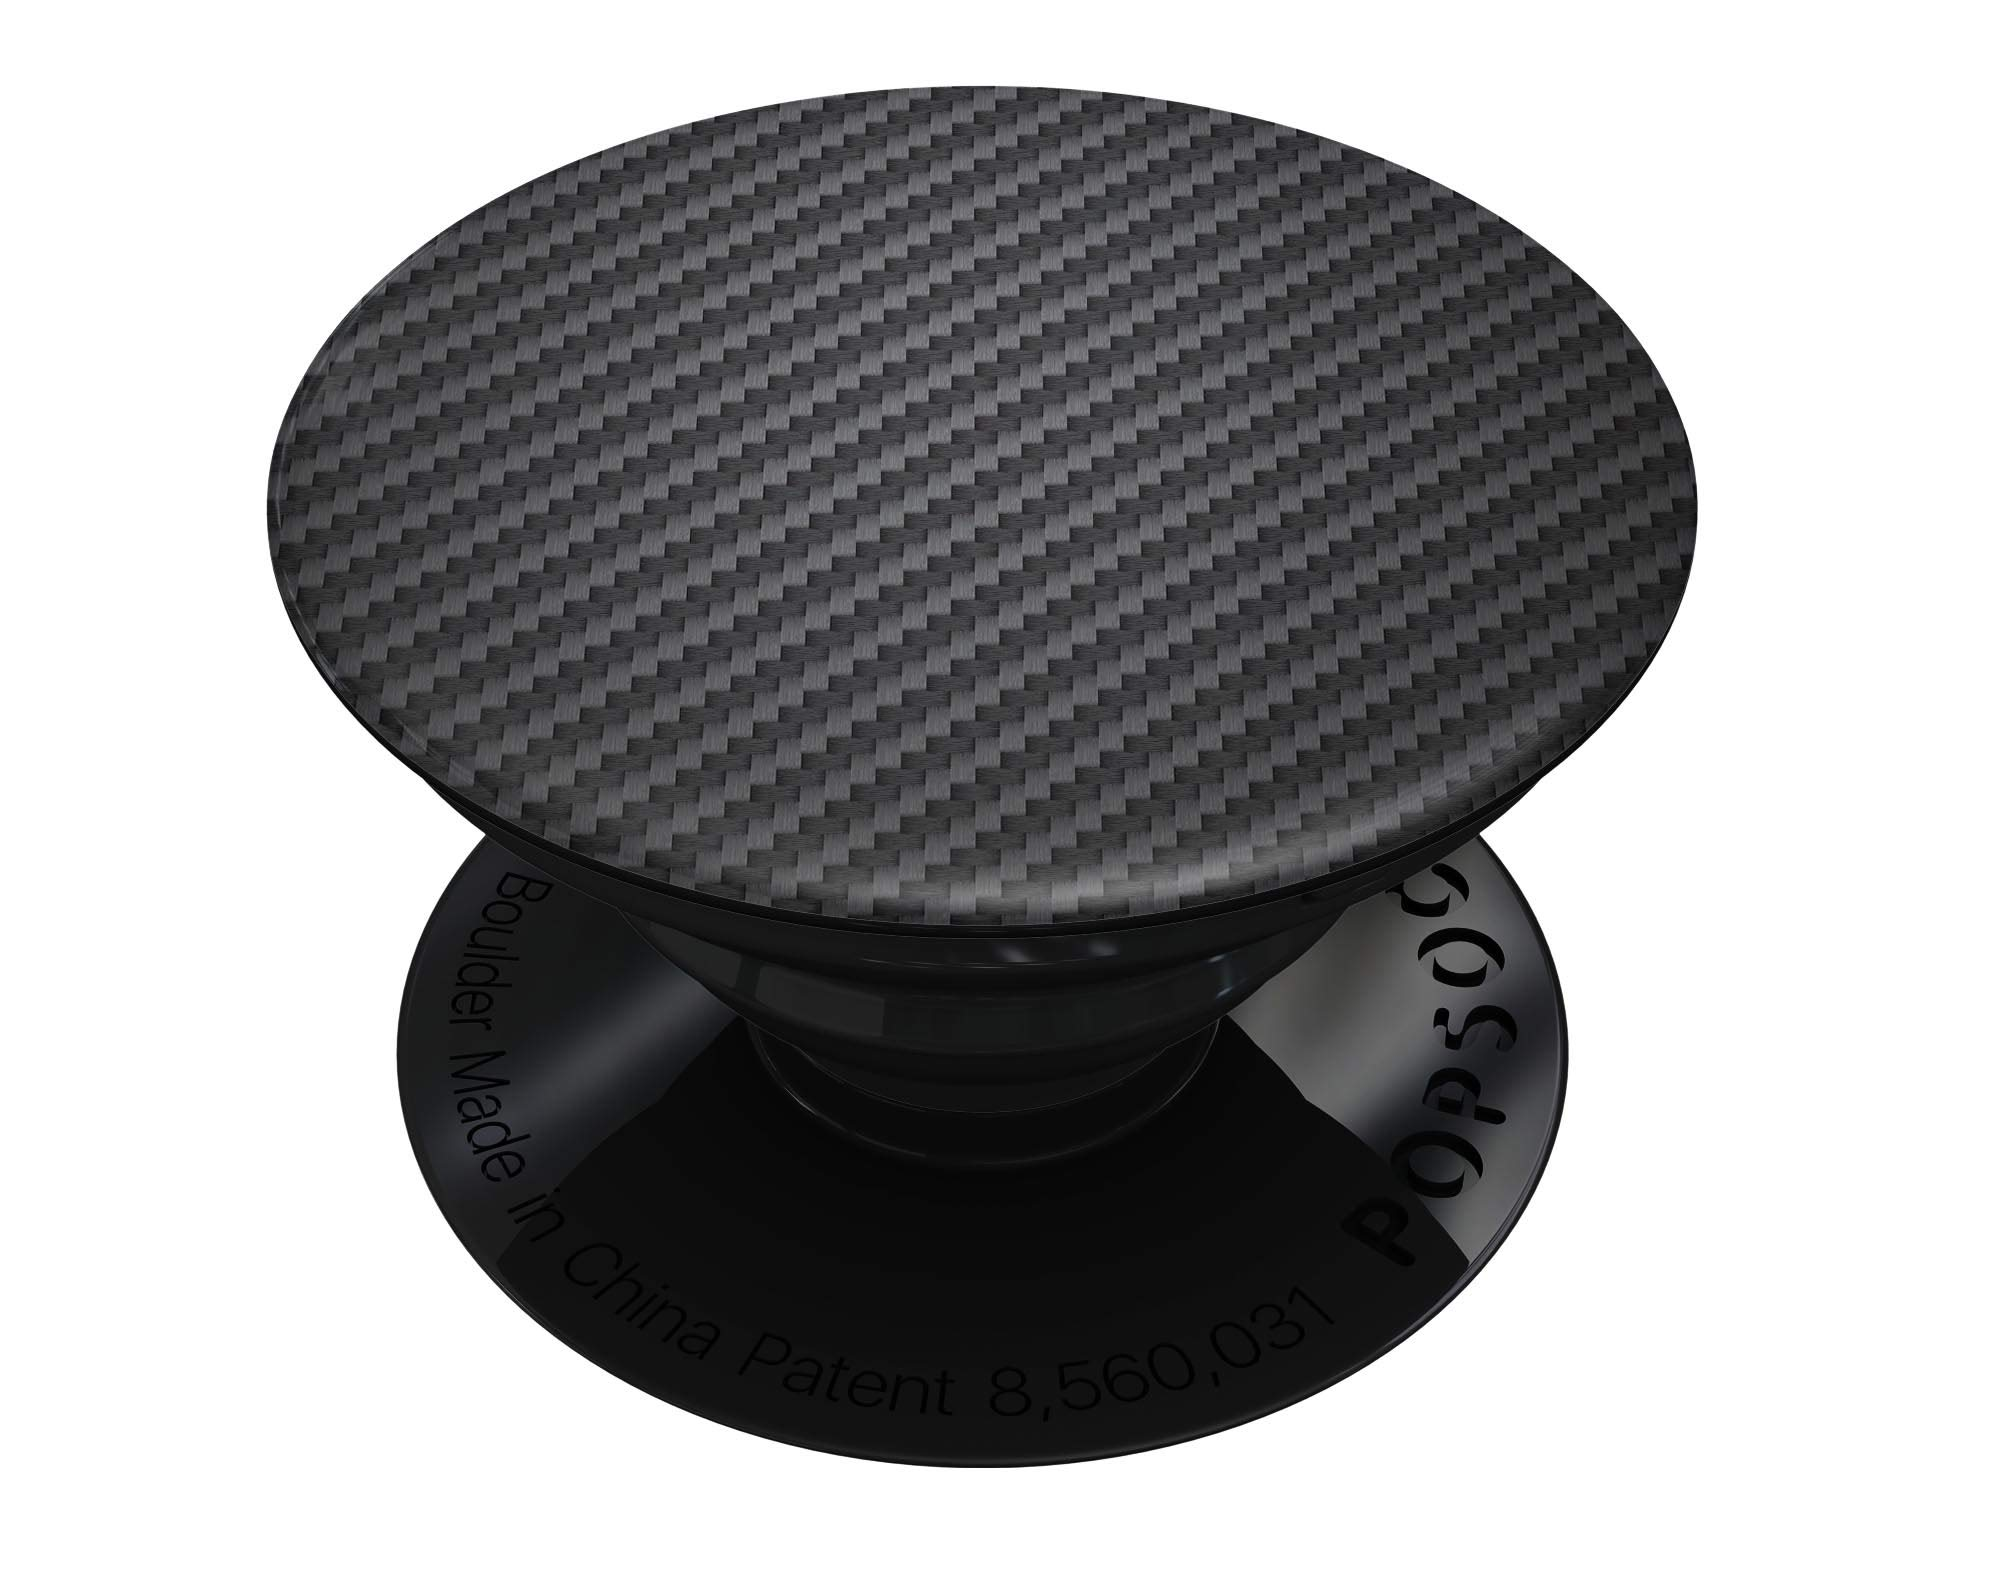 Carbon Fiber Texture - DesignSkinz Premium Decal Sticker Skin-Kit for PopSockets Smartphone Extendable Grip & Stand